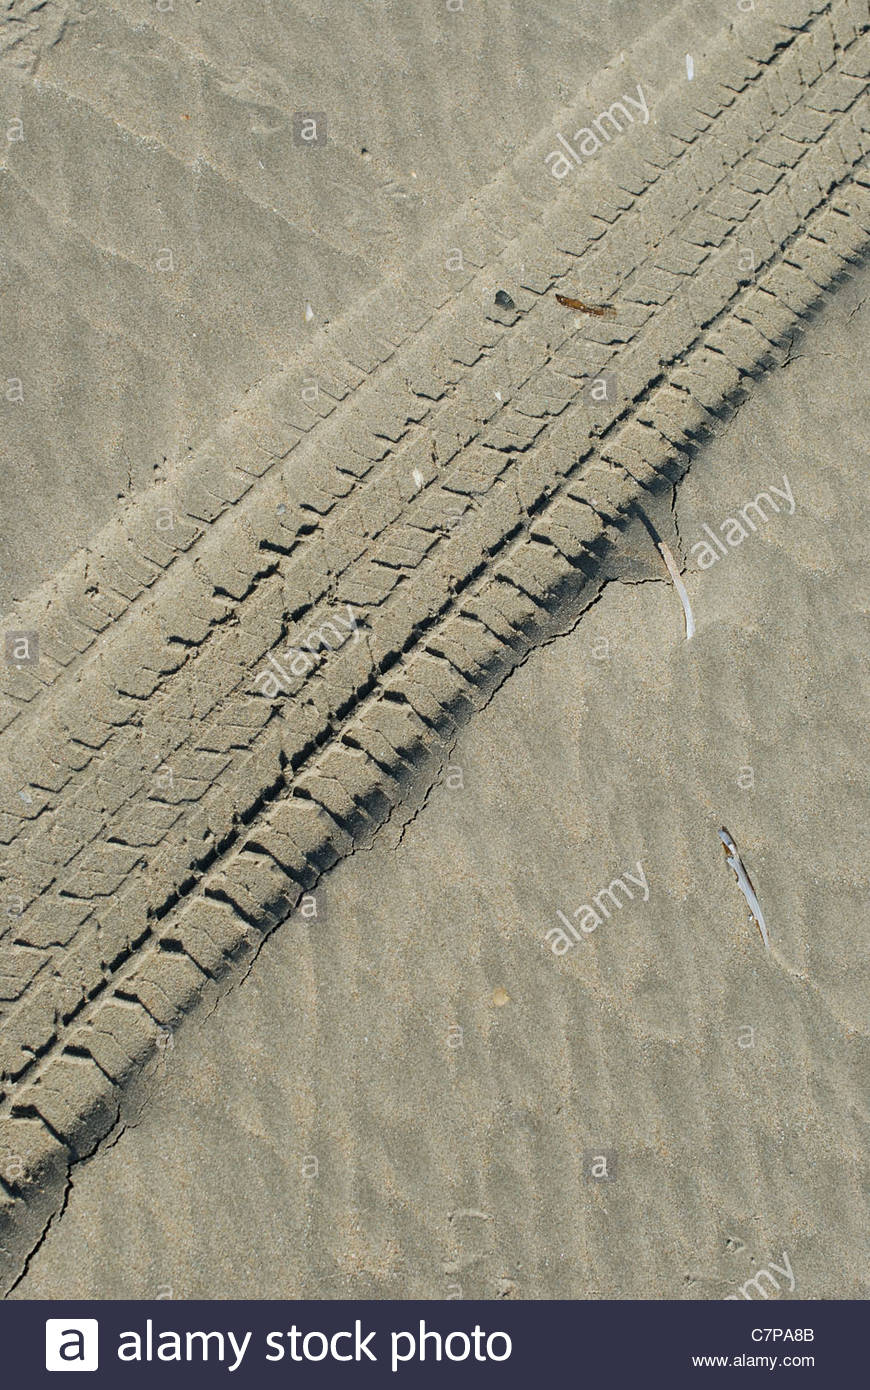 Ijmuiden The Netherlands Ijmuiden strand (beach) tyre tracks in the sand. - Stock Image